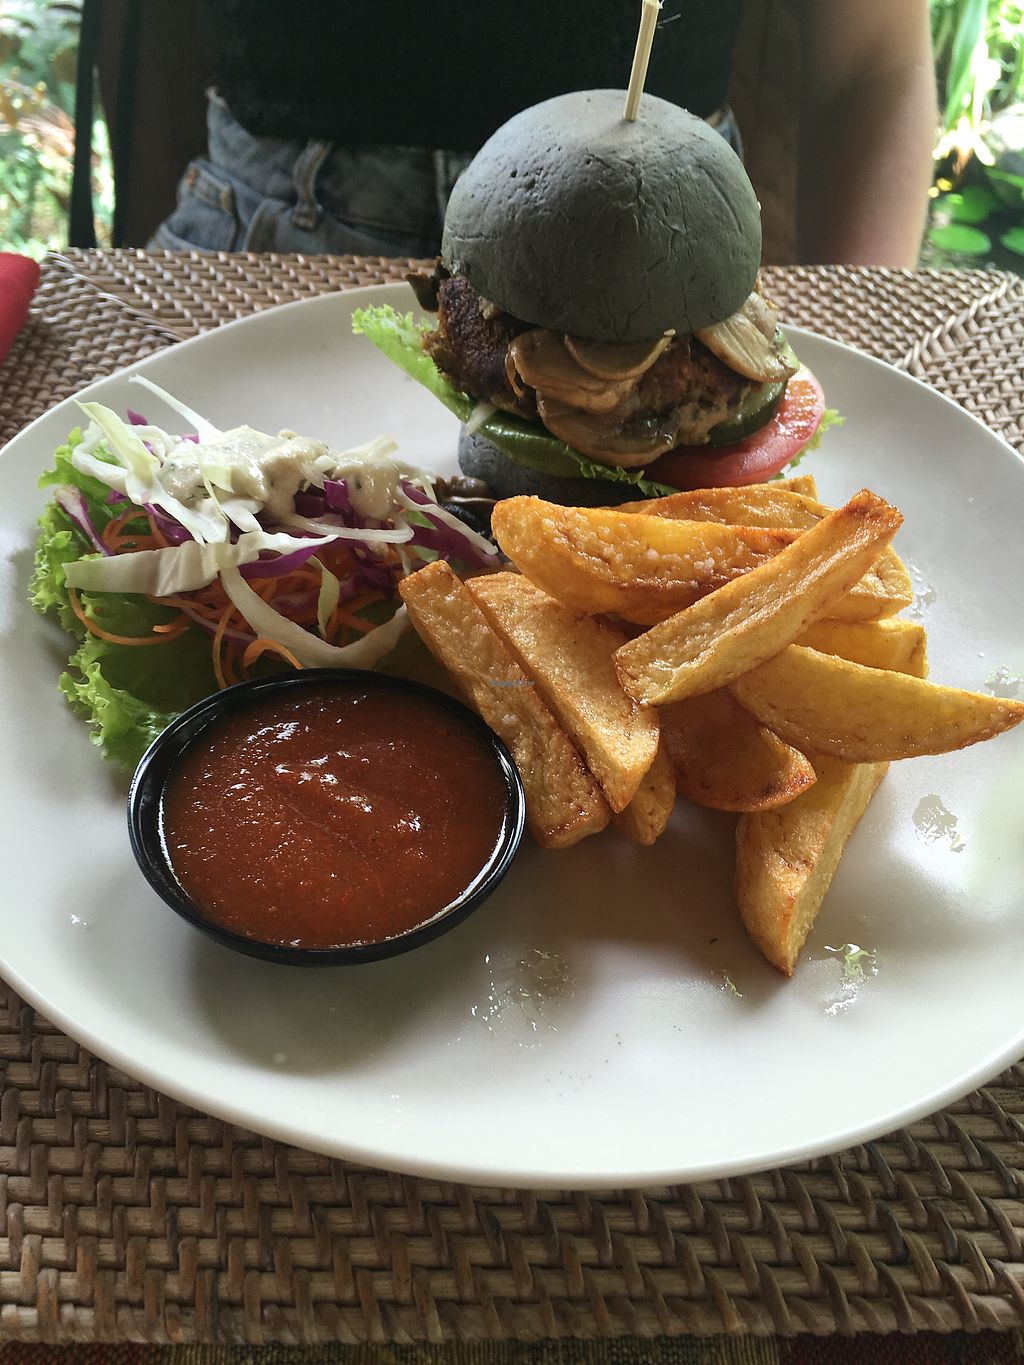 "Photo of Taragon Ubud  by <a href=""/members/profile/EmilyHansson"">EmilyHansson</a> <br/>Veggie burger with coconut charcoal bun <br/> December 16, 2017  - <a href='/contact/abuse/image/97456/336054'>Report</a>"